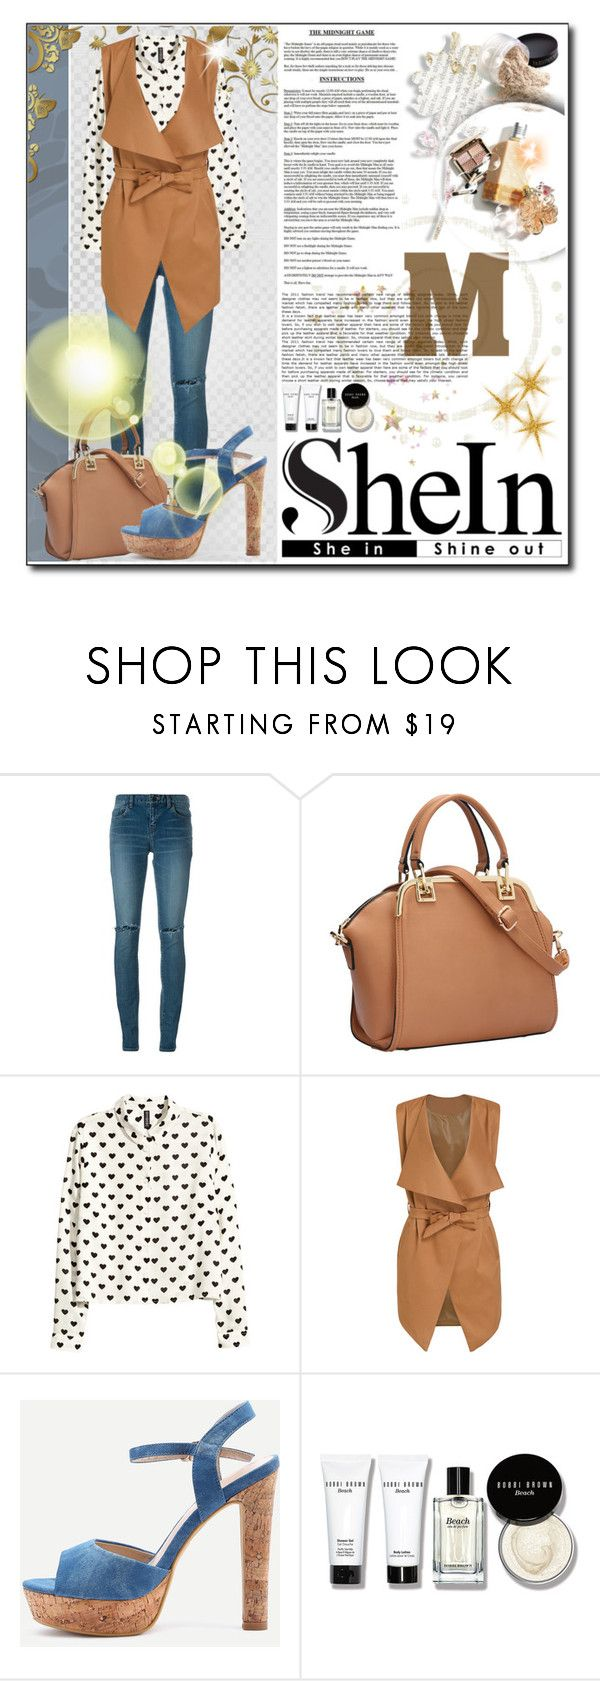 WIN SHEIN $30 COUPON! by jessinerio4l on Polyvore featuring H&M, Yves Saint Laurent, Bobbi Brown Cosmetics, Sheinside and shein